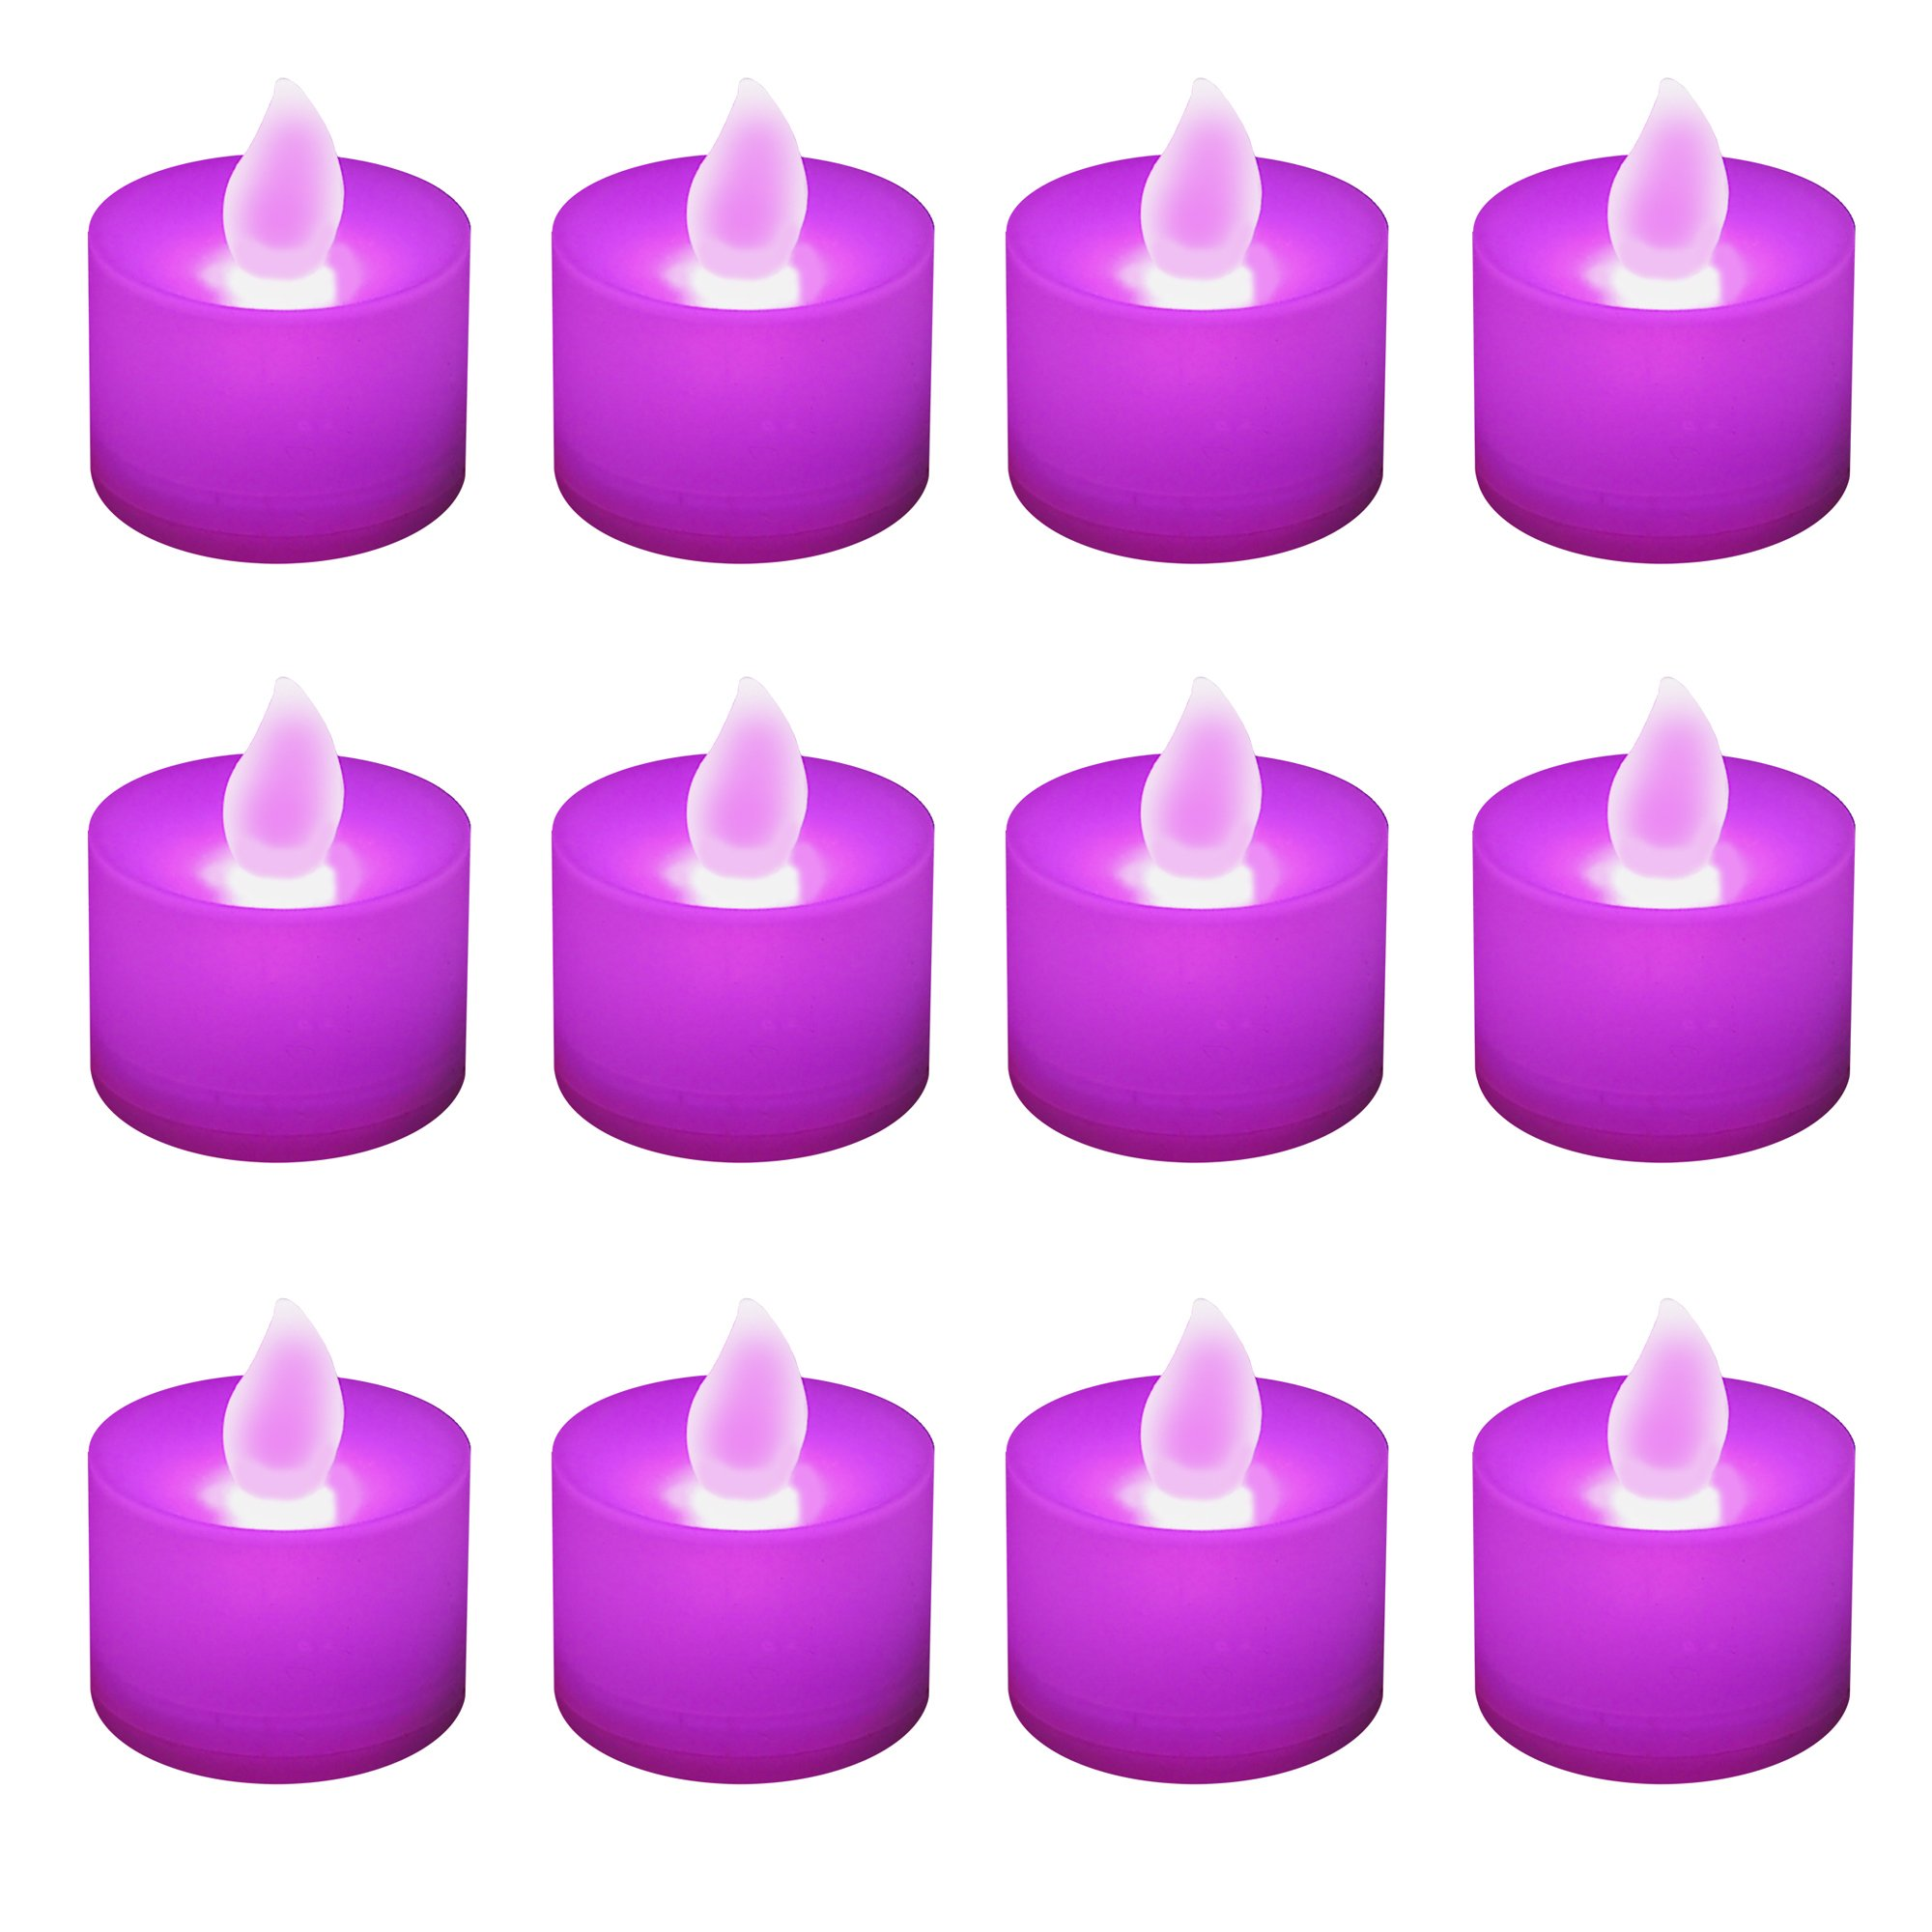 Lumabase 80112 12 Count Battery Operated Tea Lights, Purple by Lumabase